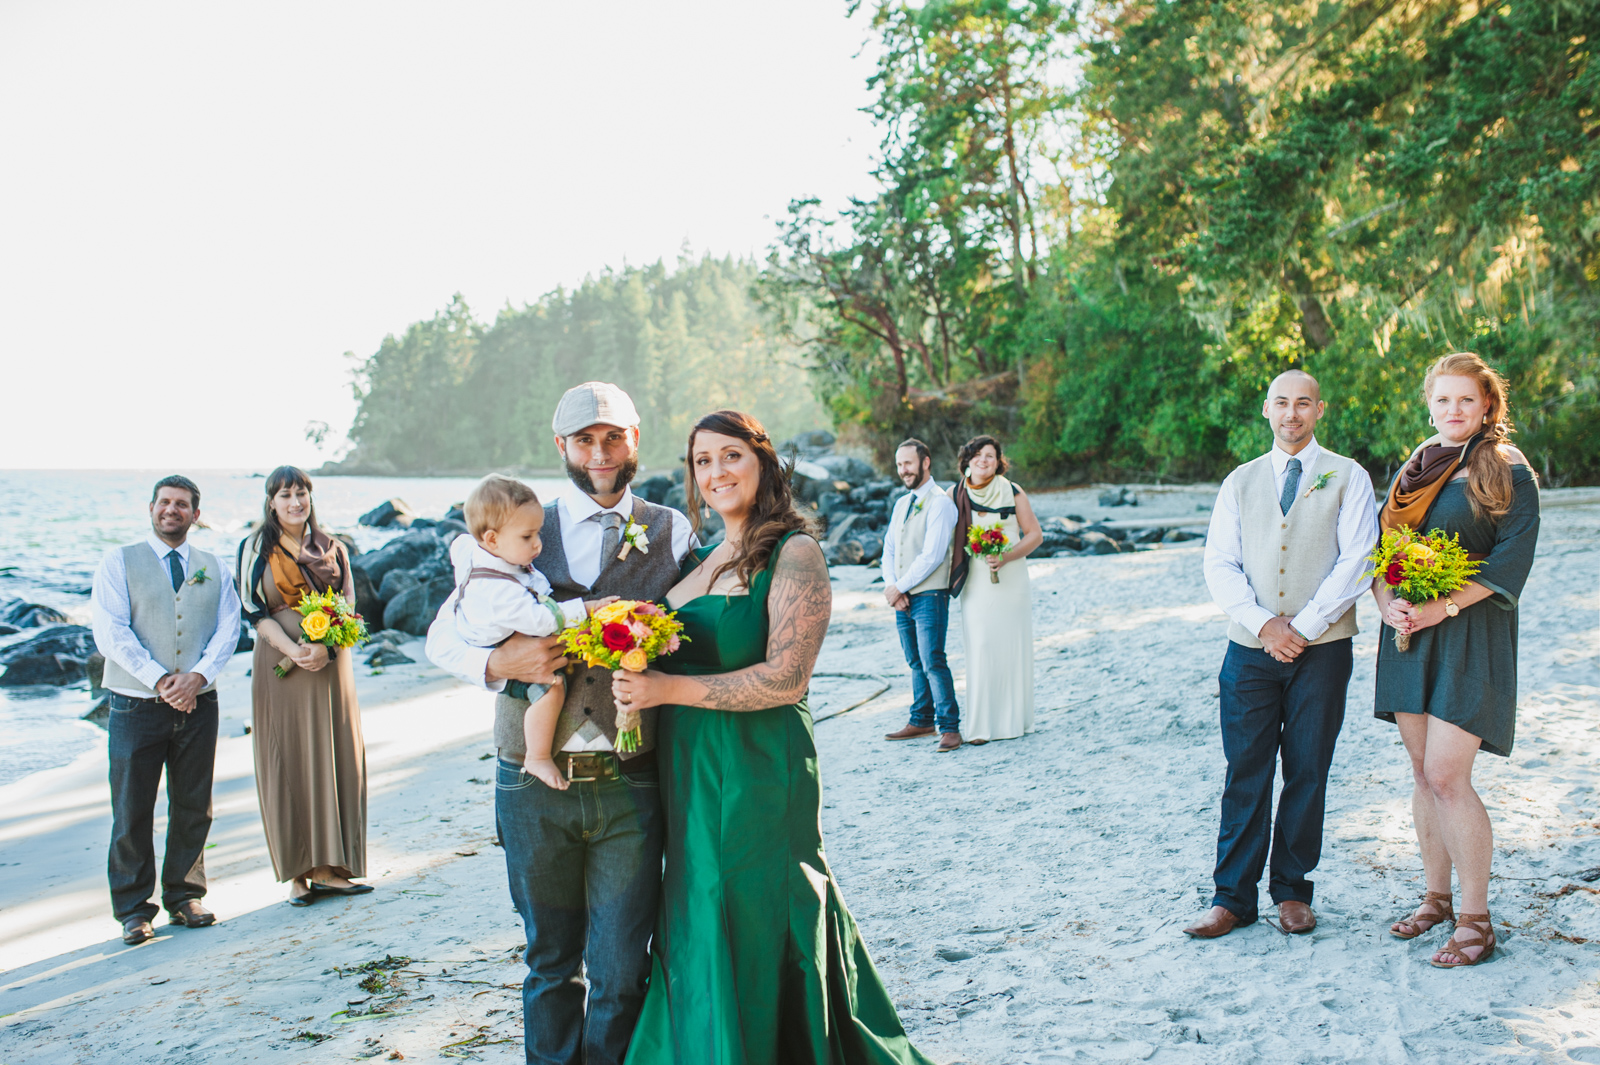 sooke-wedding-photographers-diy-wedding-in-east-sooke-46.jpg